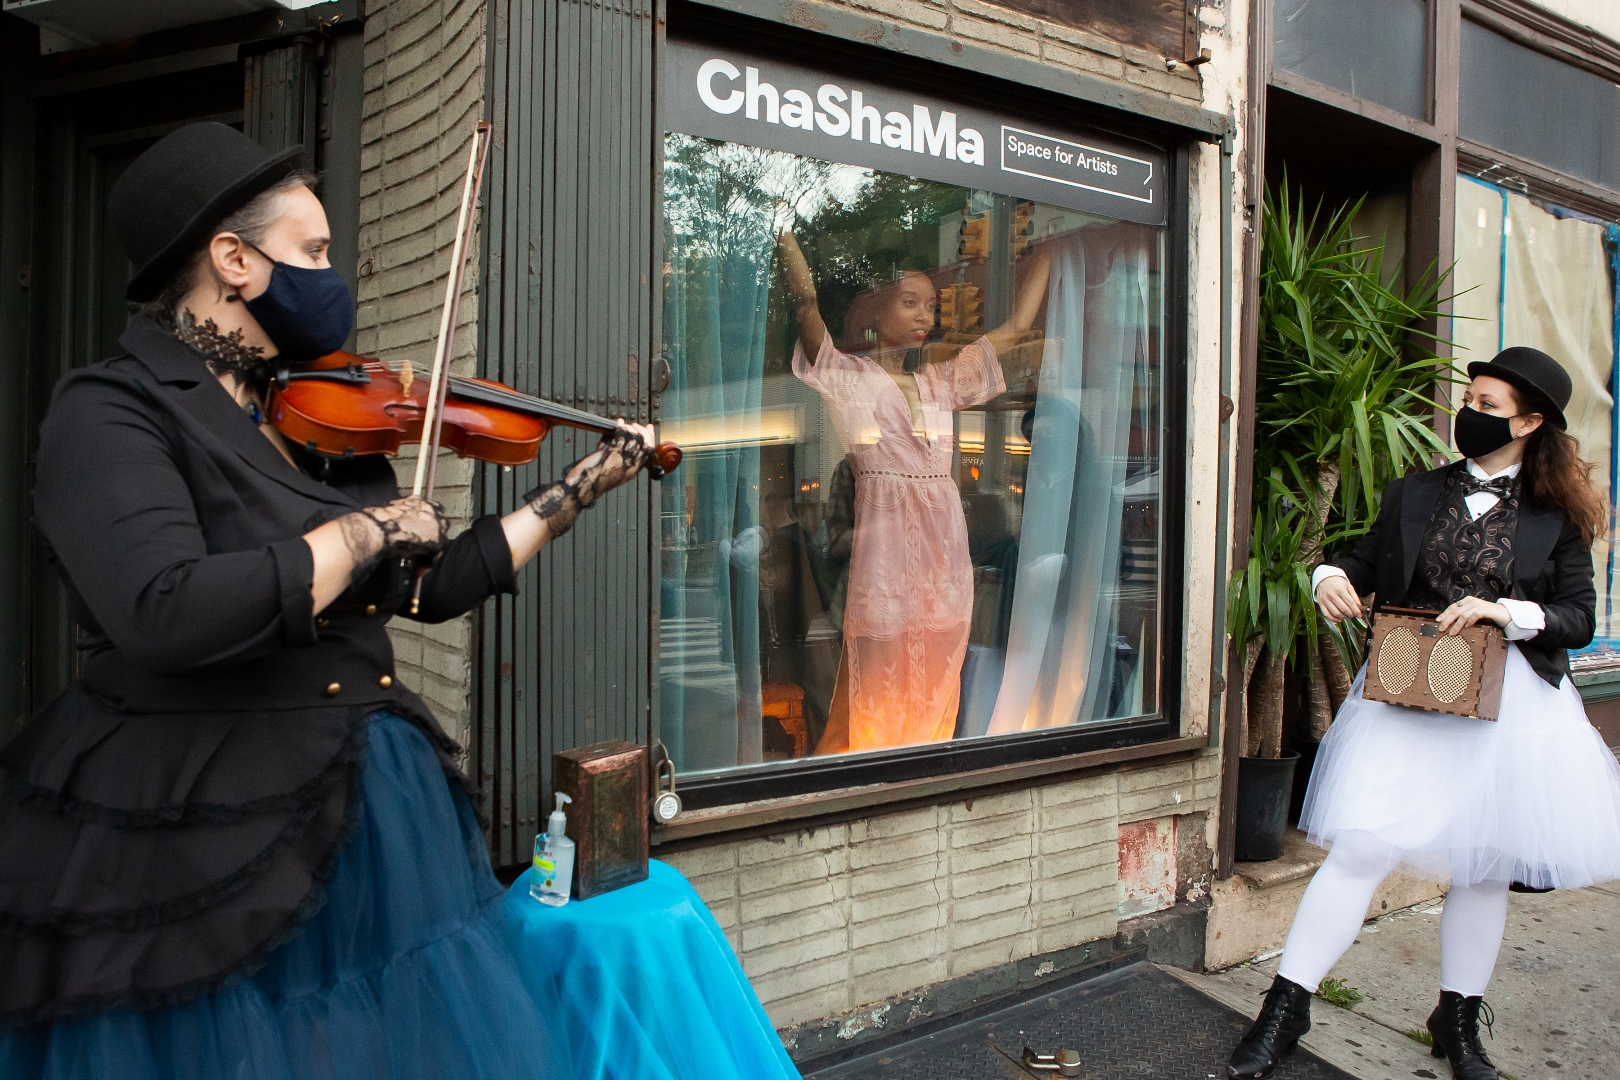 Chashama: Shaping the New York Art World with Support and Kindness